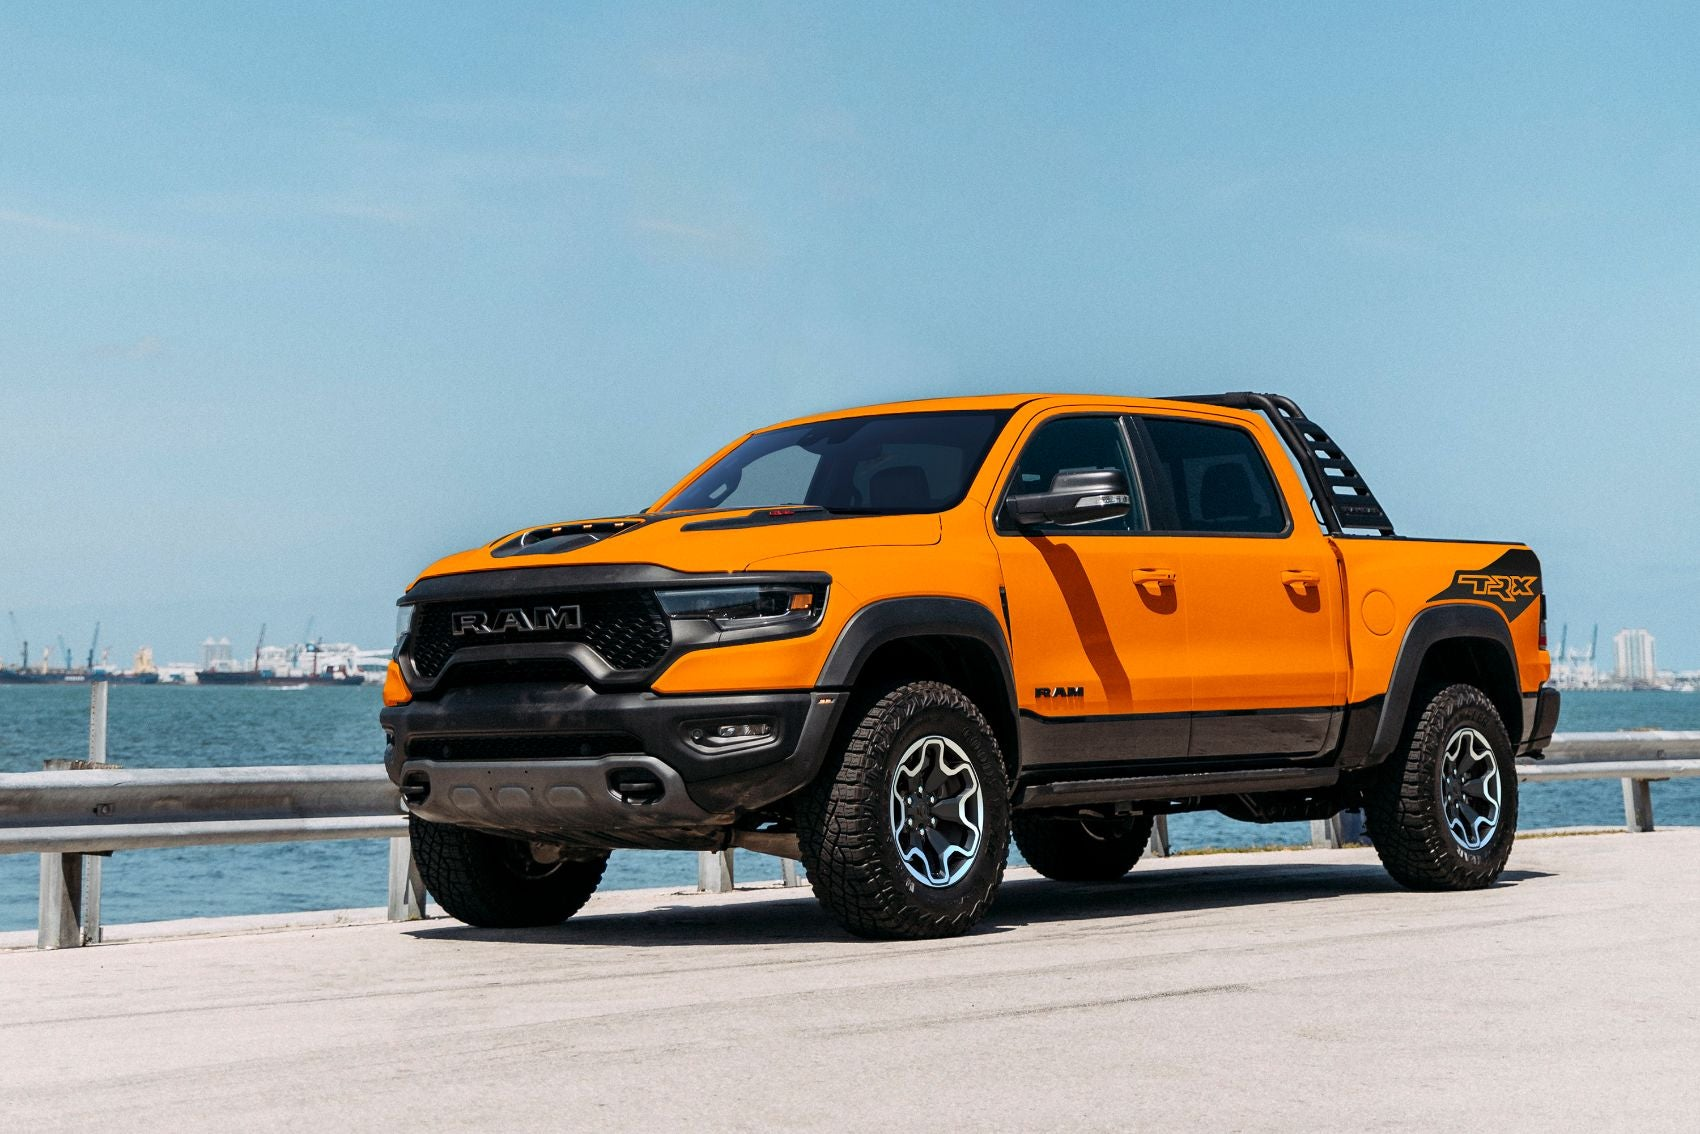 Ram 1500 TRX Ignition, Longhorn SouthFork & (RED) Editions: See What's New